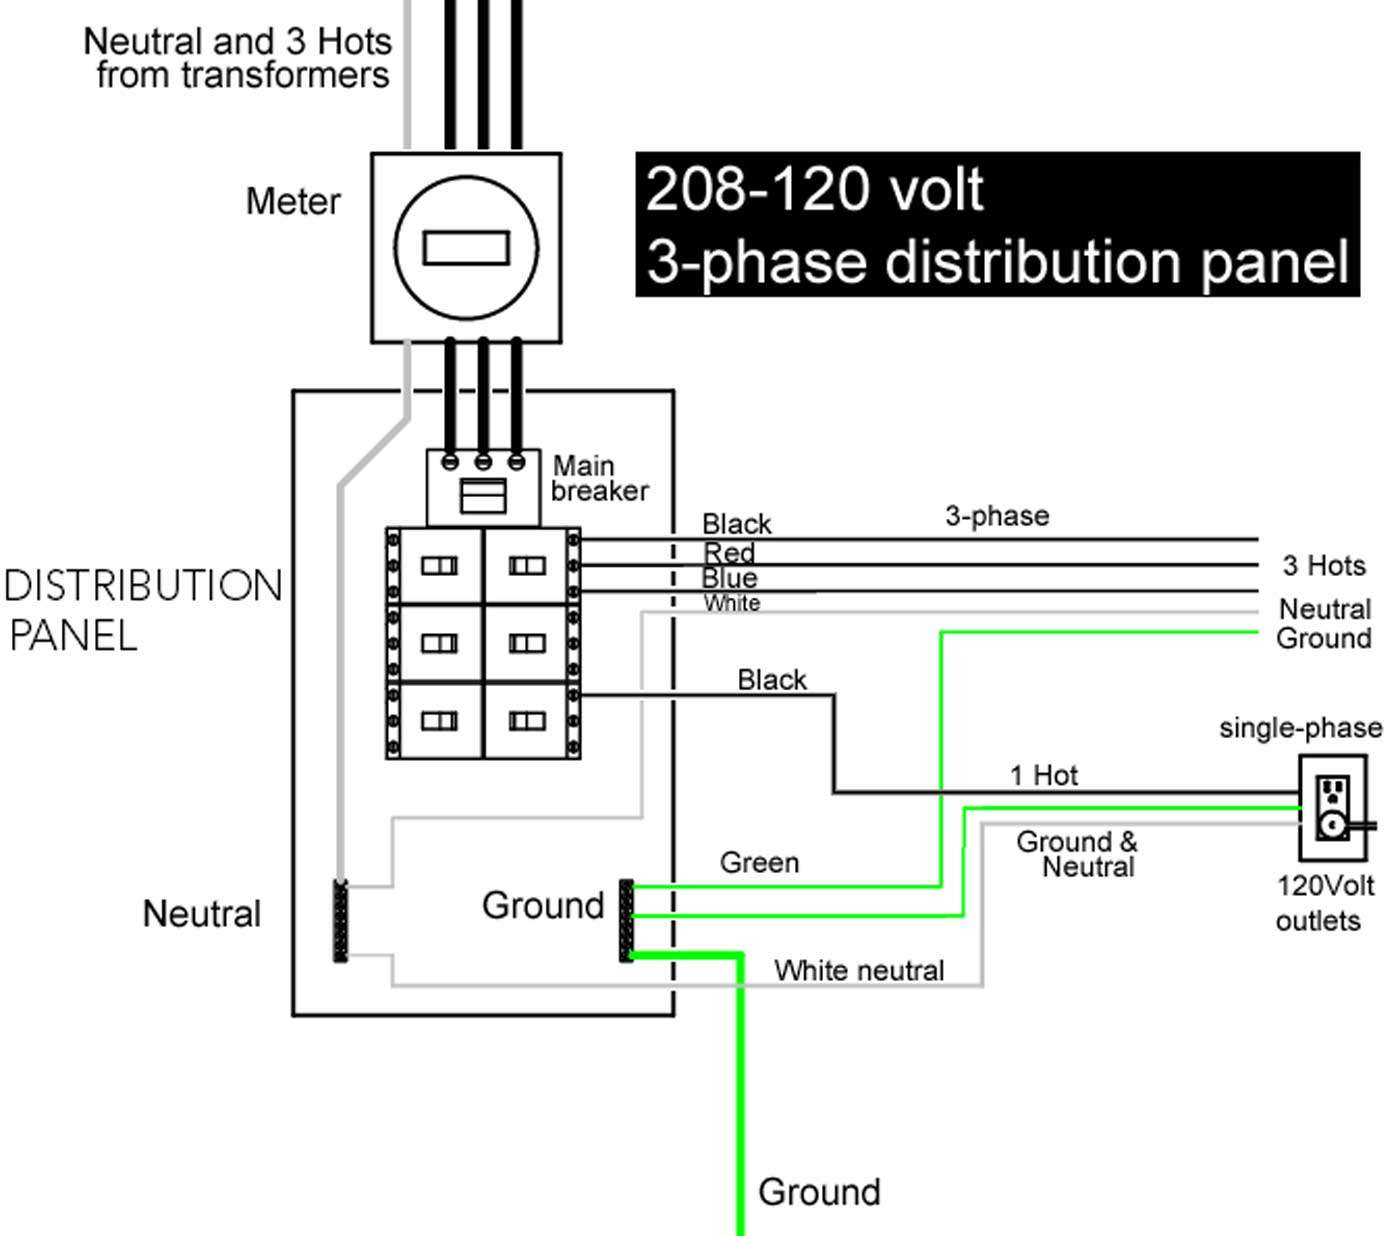 hight resolution of 208 volt wiring diagram wiring diagram details 208 volt wiring diagram blog wiring diagram 208 volt